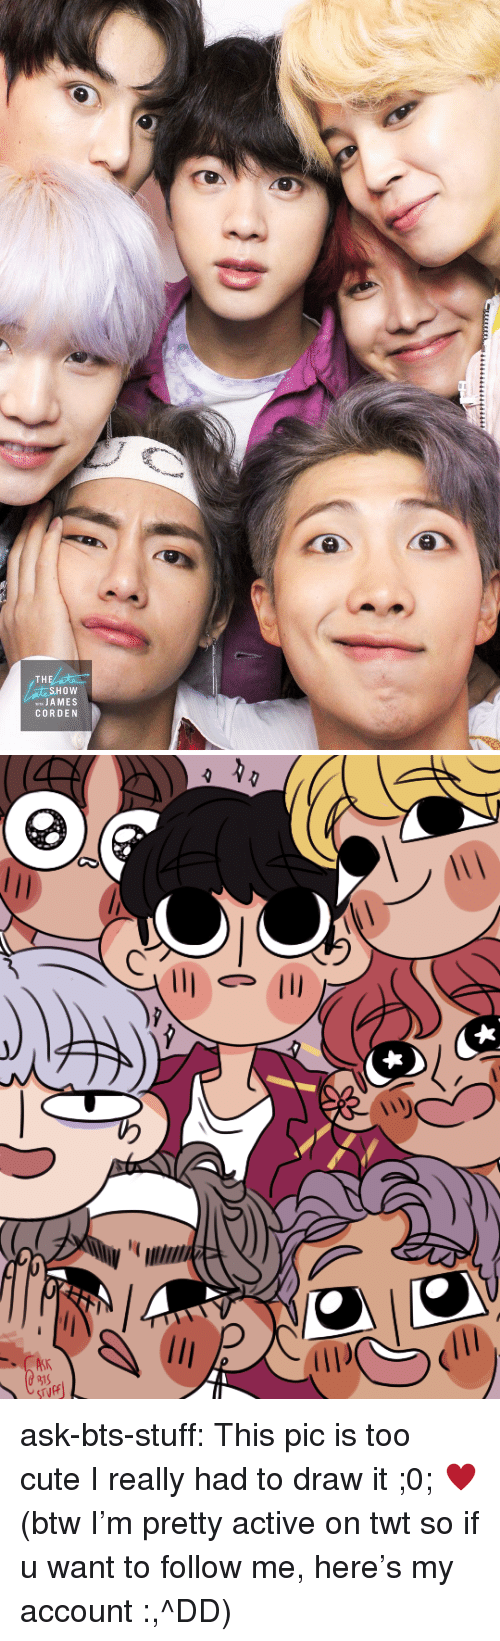 Cute, Tumblr, and Twitter: THE  SHOW  JA MES  CORDEN ask-bts-stuff:  This pic is too cute I really had to draw it ;0; ♥(btw I'm pretty active on twt so if u want to follow me, here's my account :,^DD)